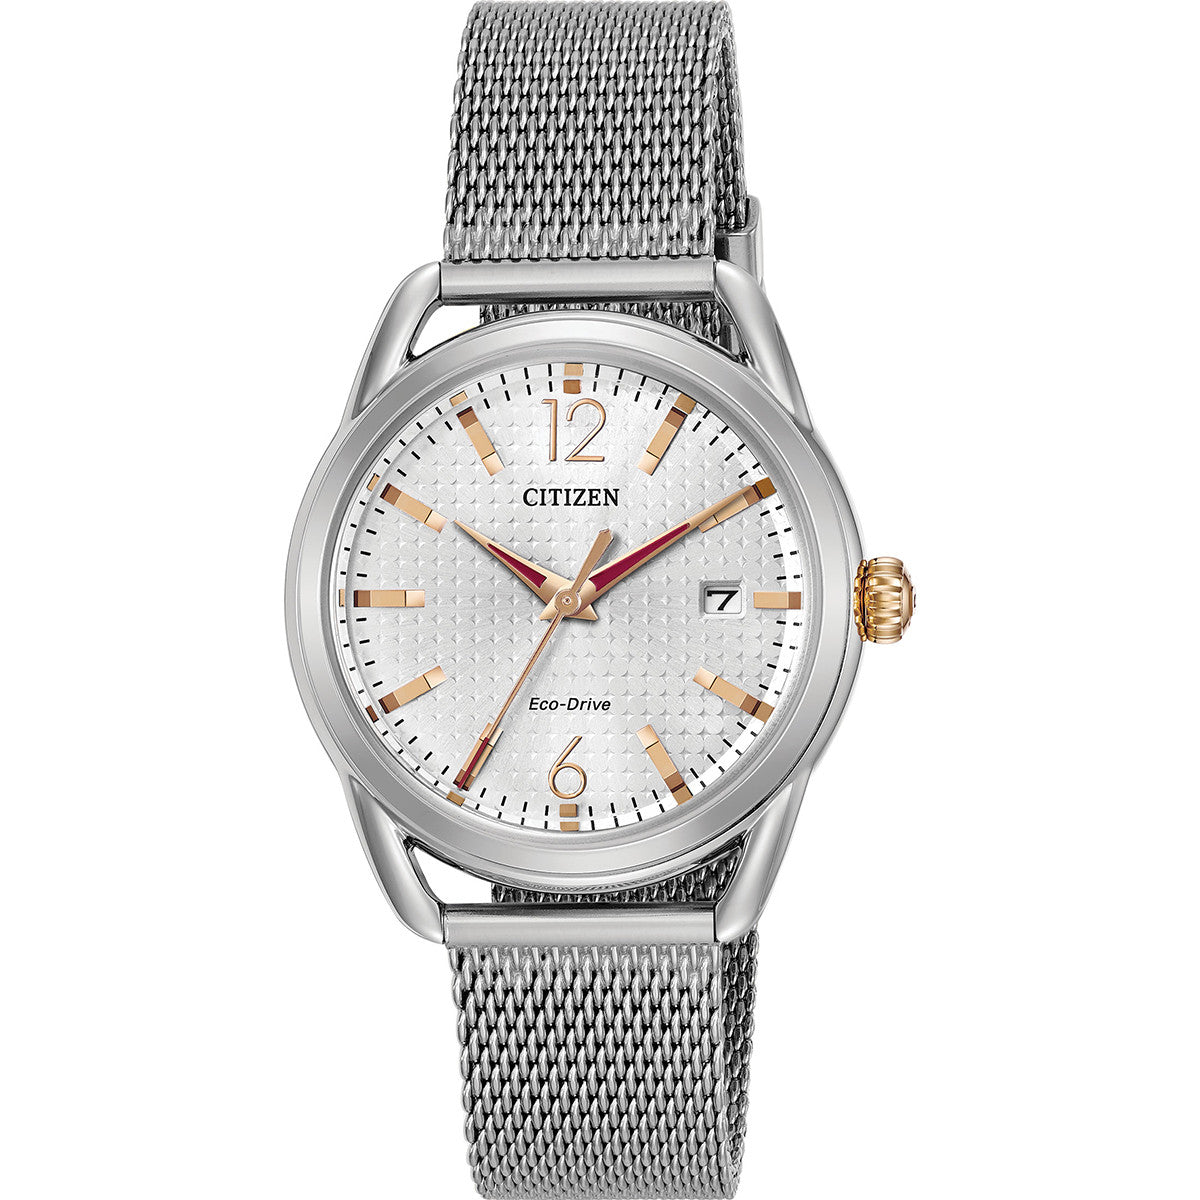 Citizen Drive LTR FE6081-51A